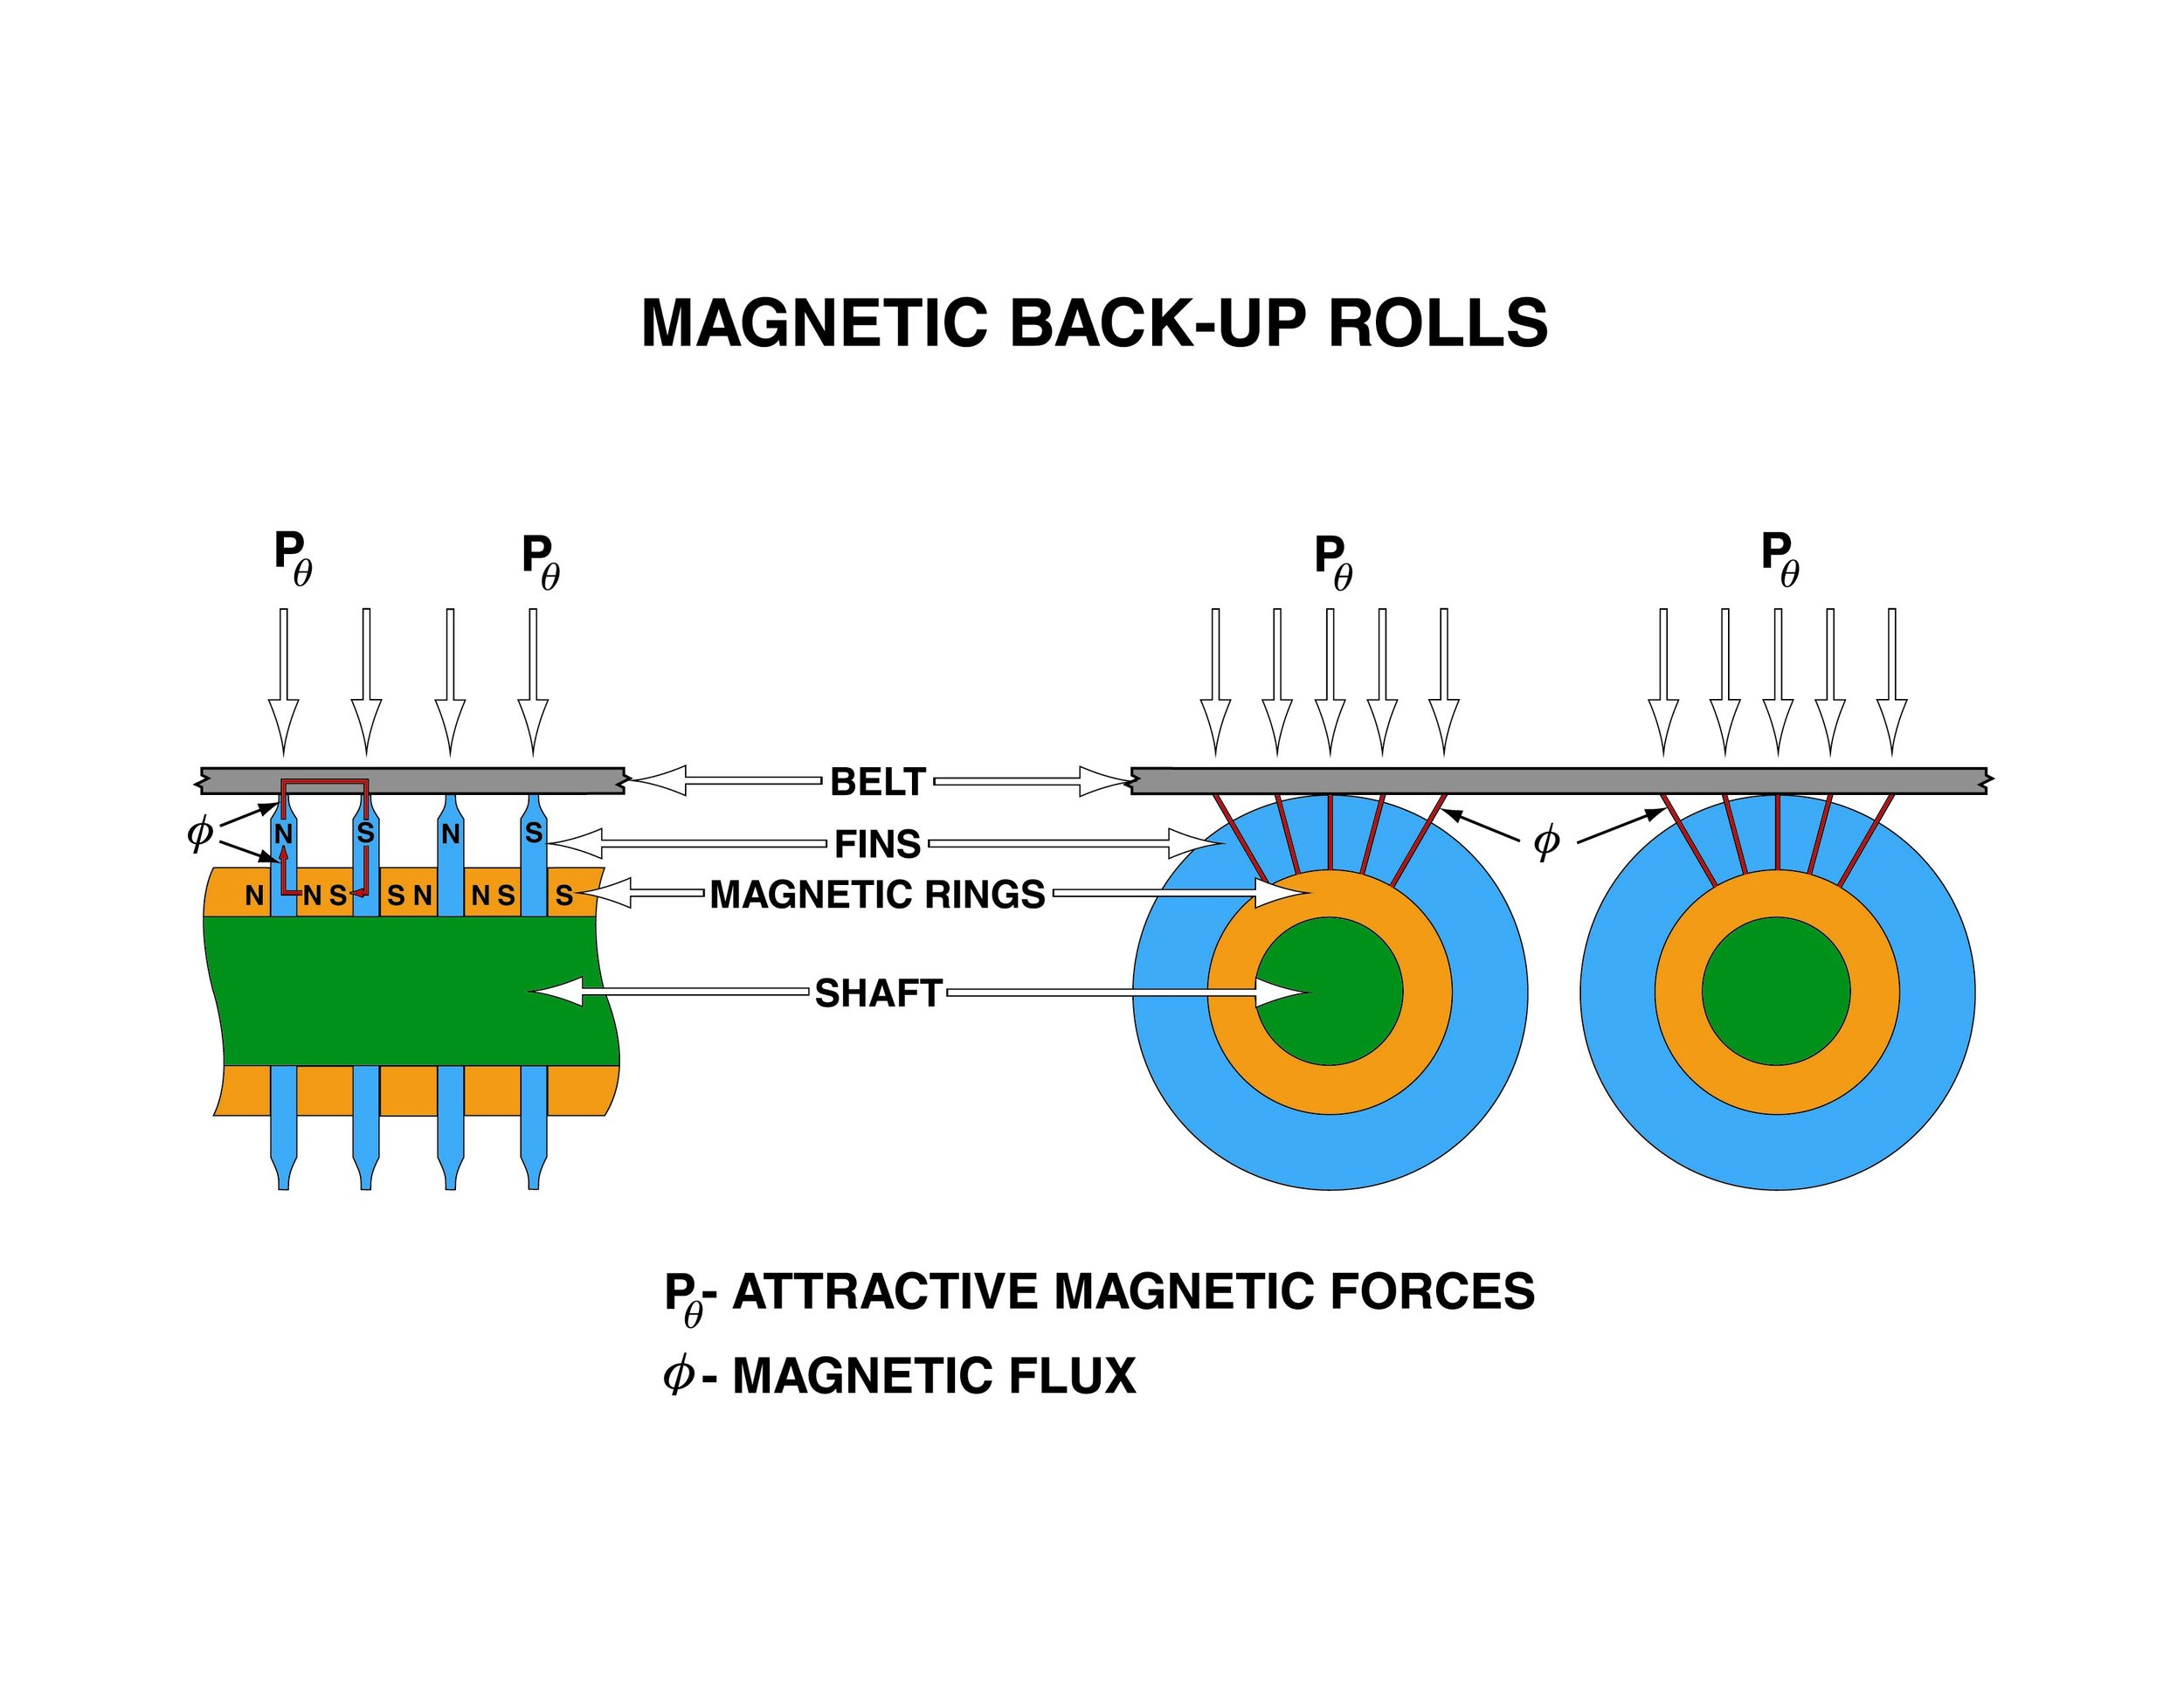 High-strength neodymium magnets exert strong attractive force to hold belts flat